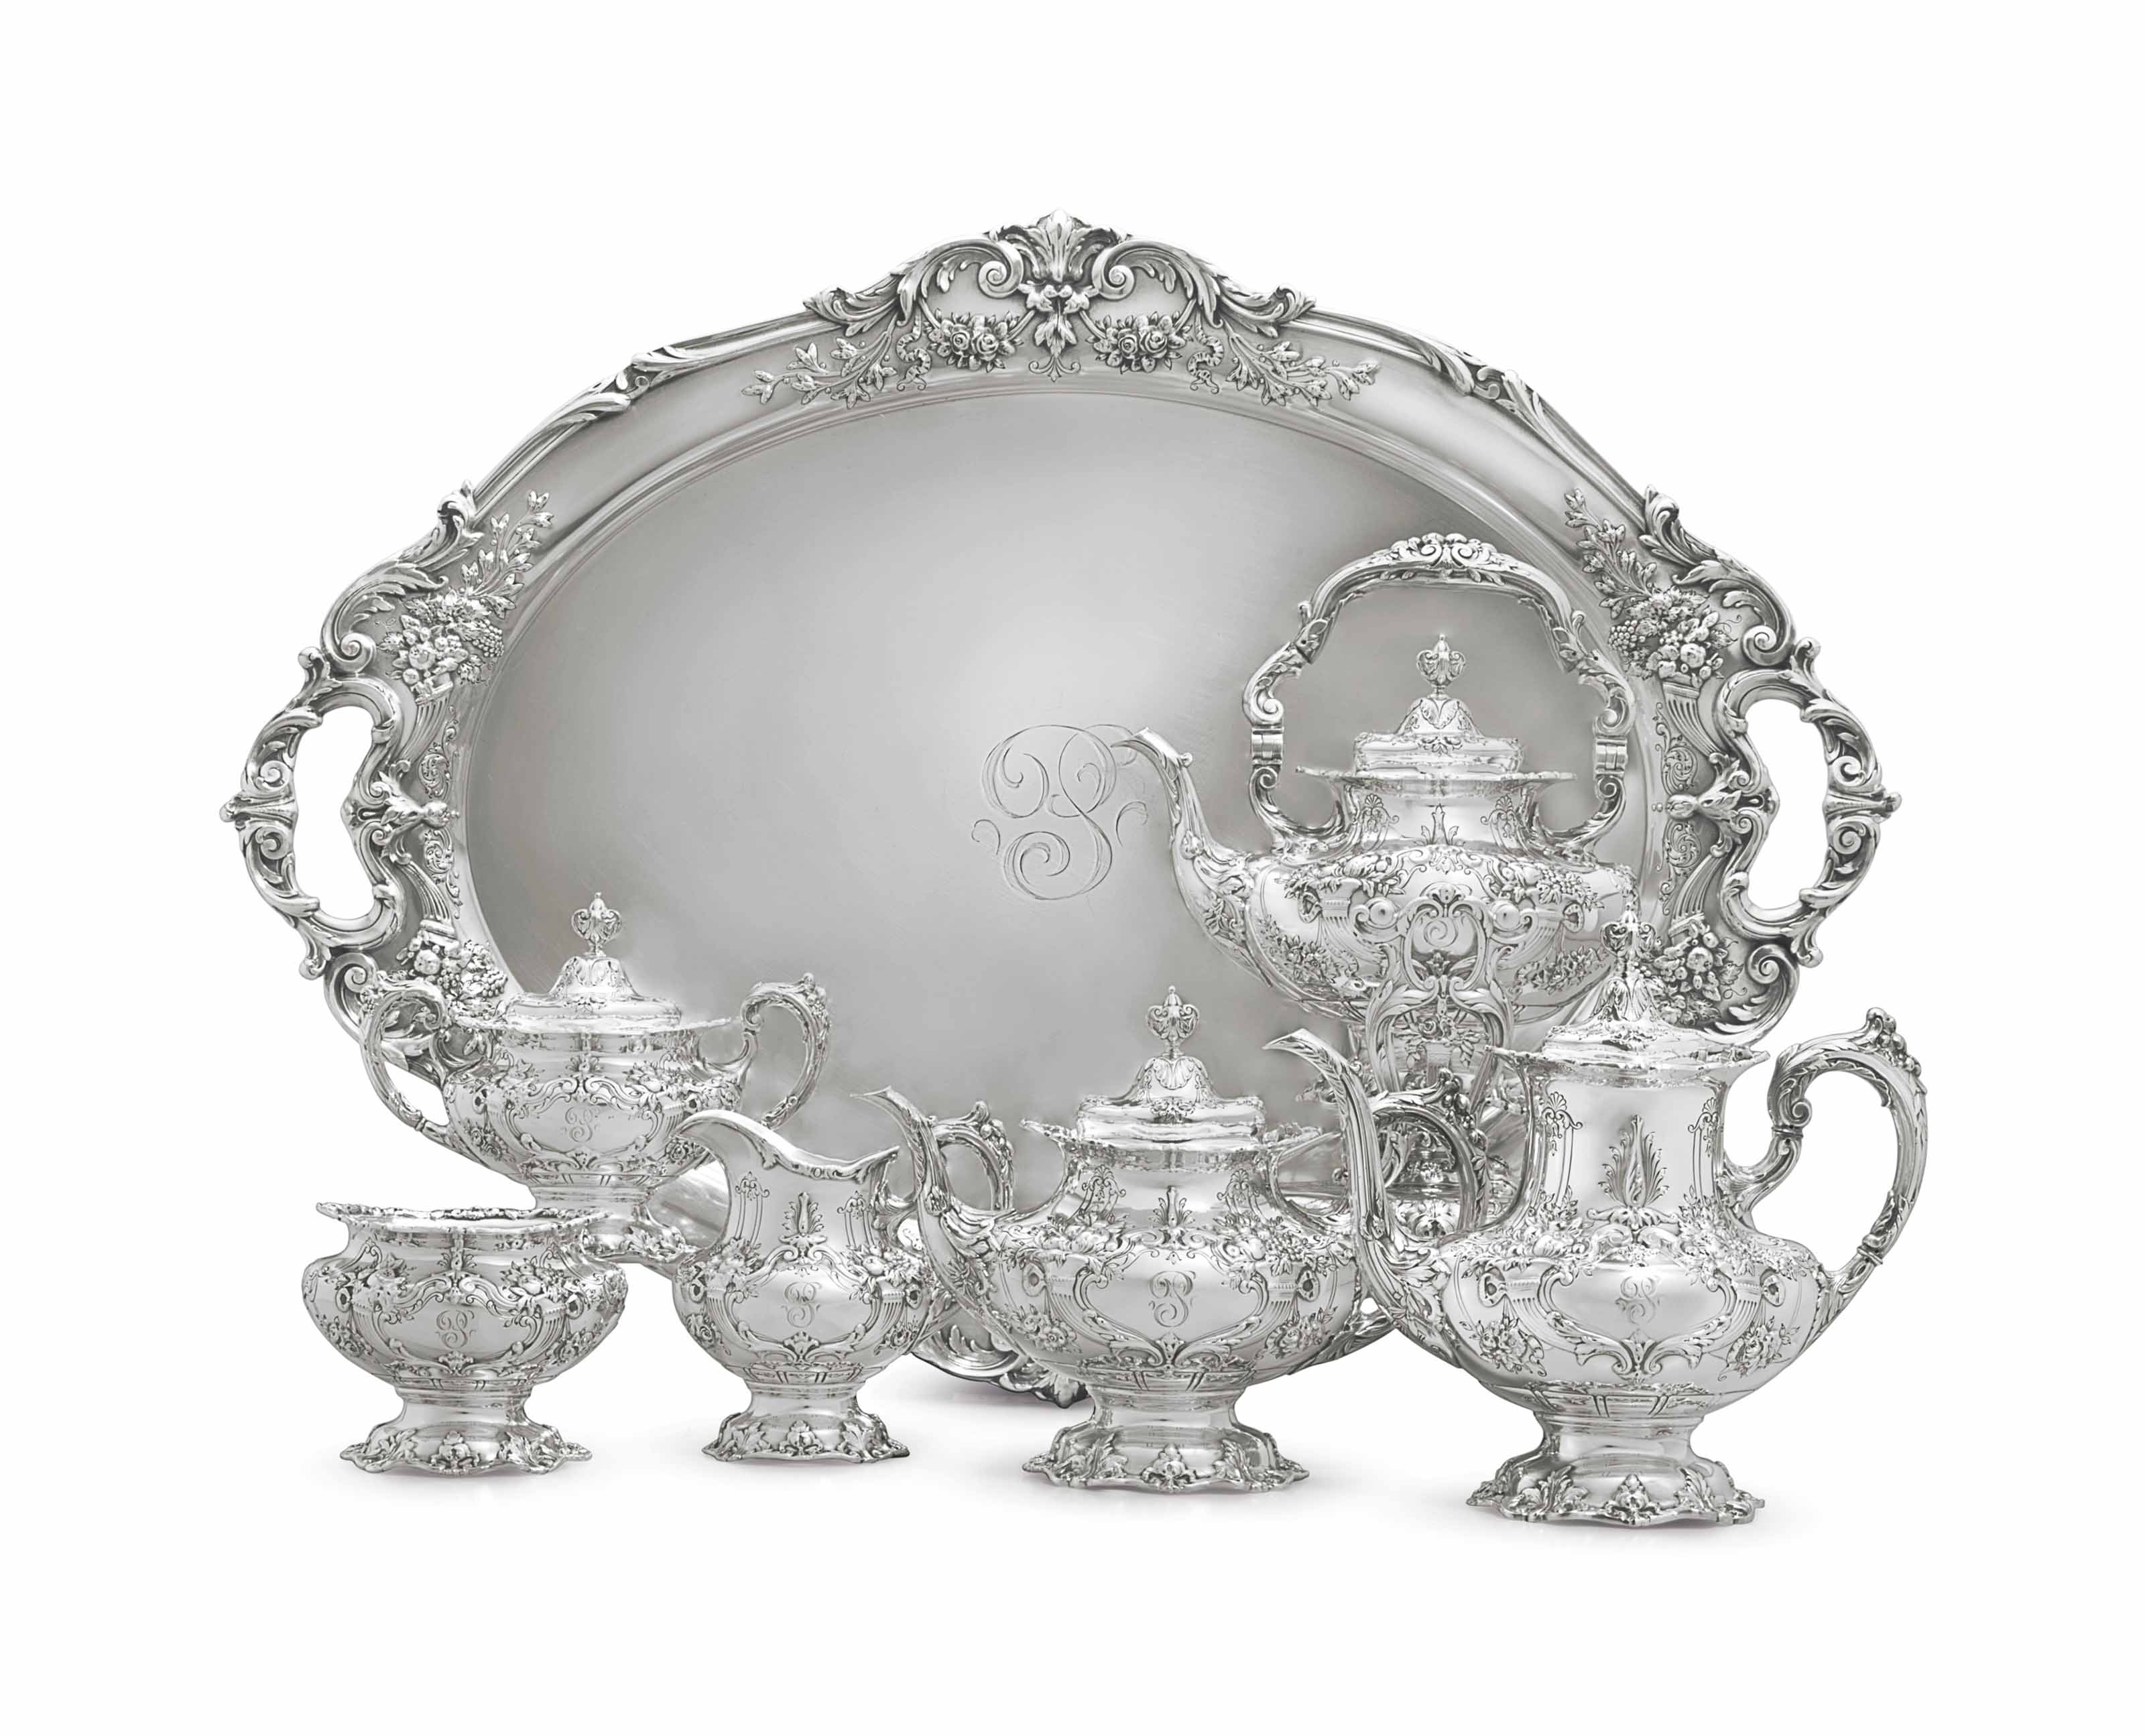 A SILVER SIX-PIECE TEA AND COFFEE SERVICE WITH MATCHING TRAY